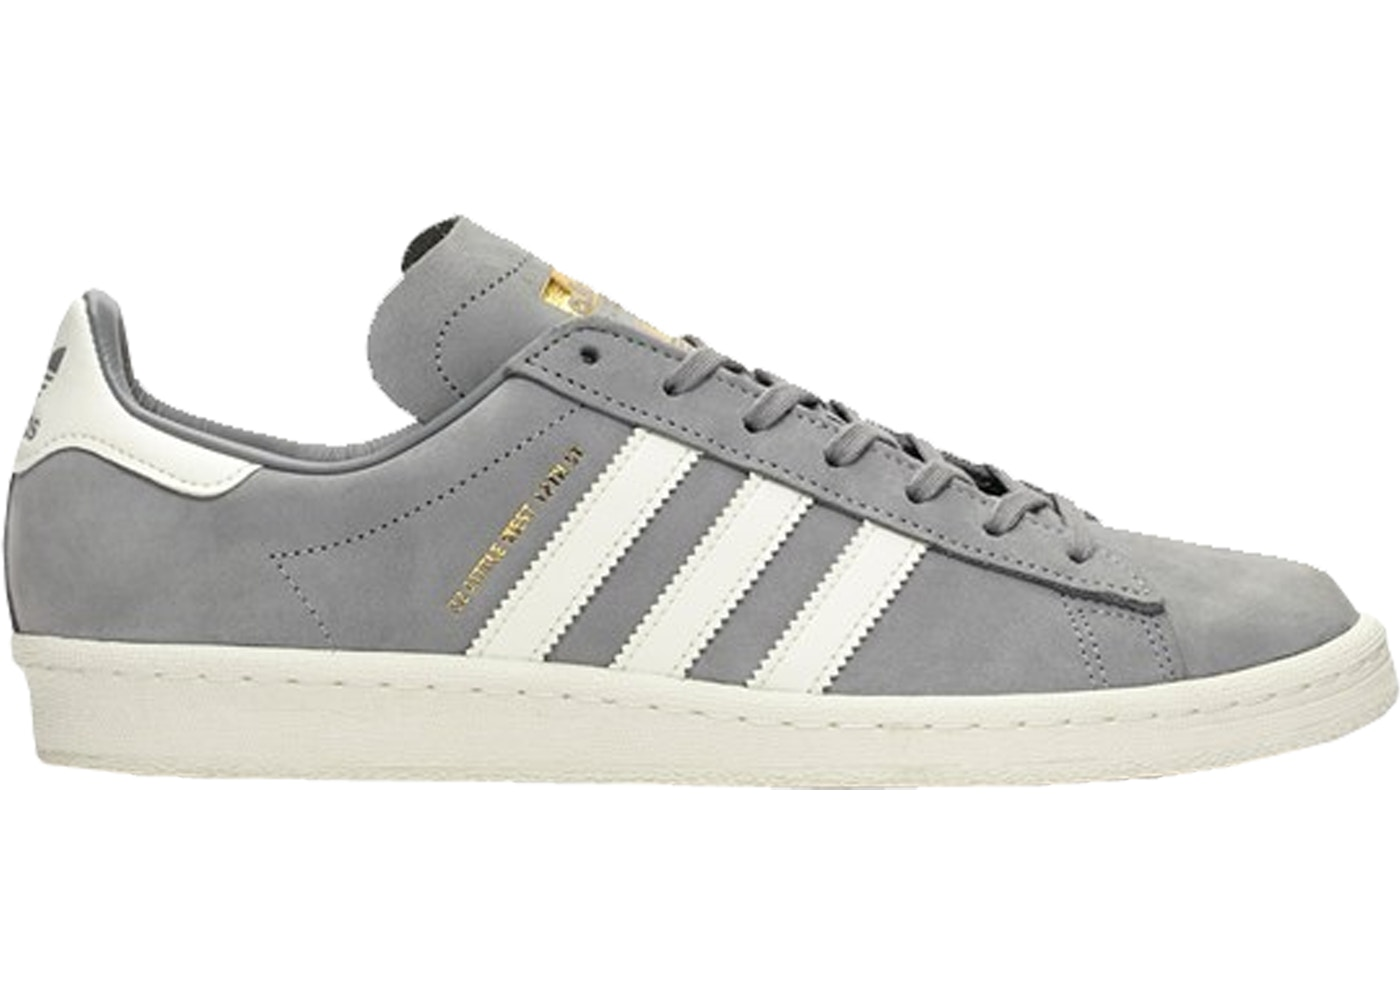 アディダス ADIDAS キャンパス スニーカー 【 CAMPUS 80S SNEAKERSNSTUFF 22 LITTLE WEST GREY THREE OFF WHITE GOLD METALLIC 】 メンズ